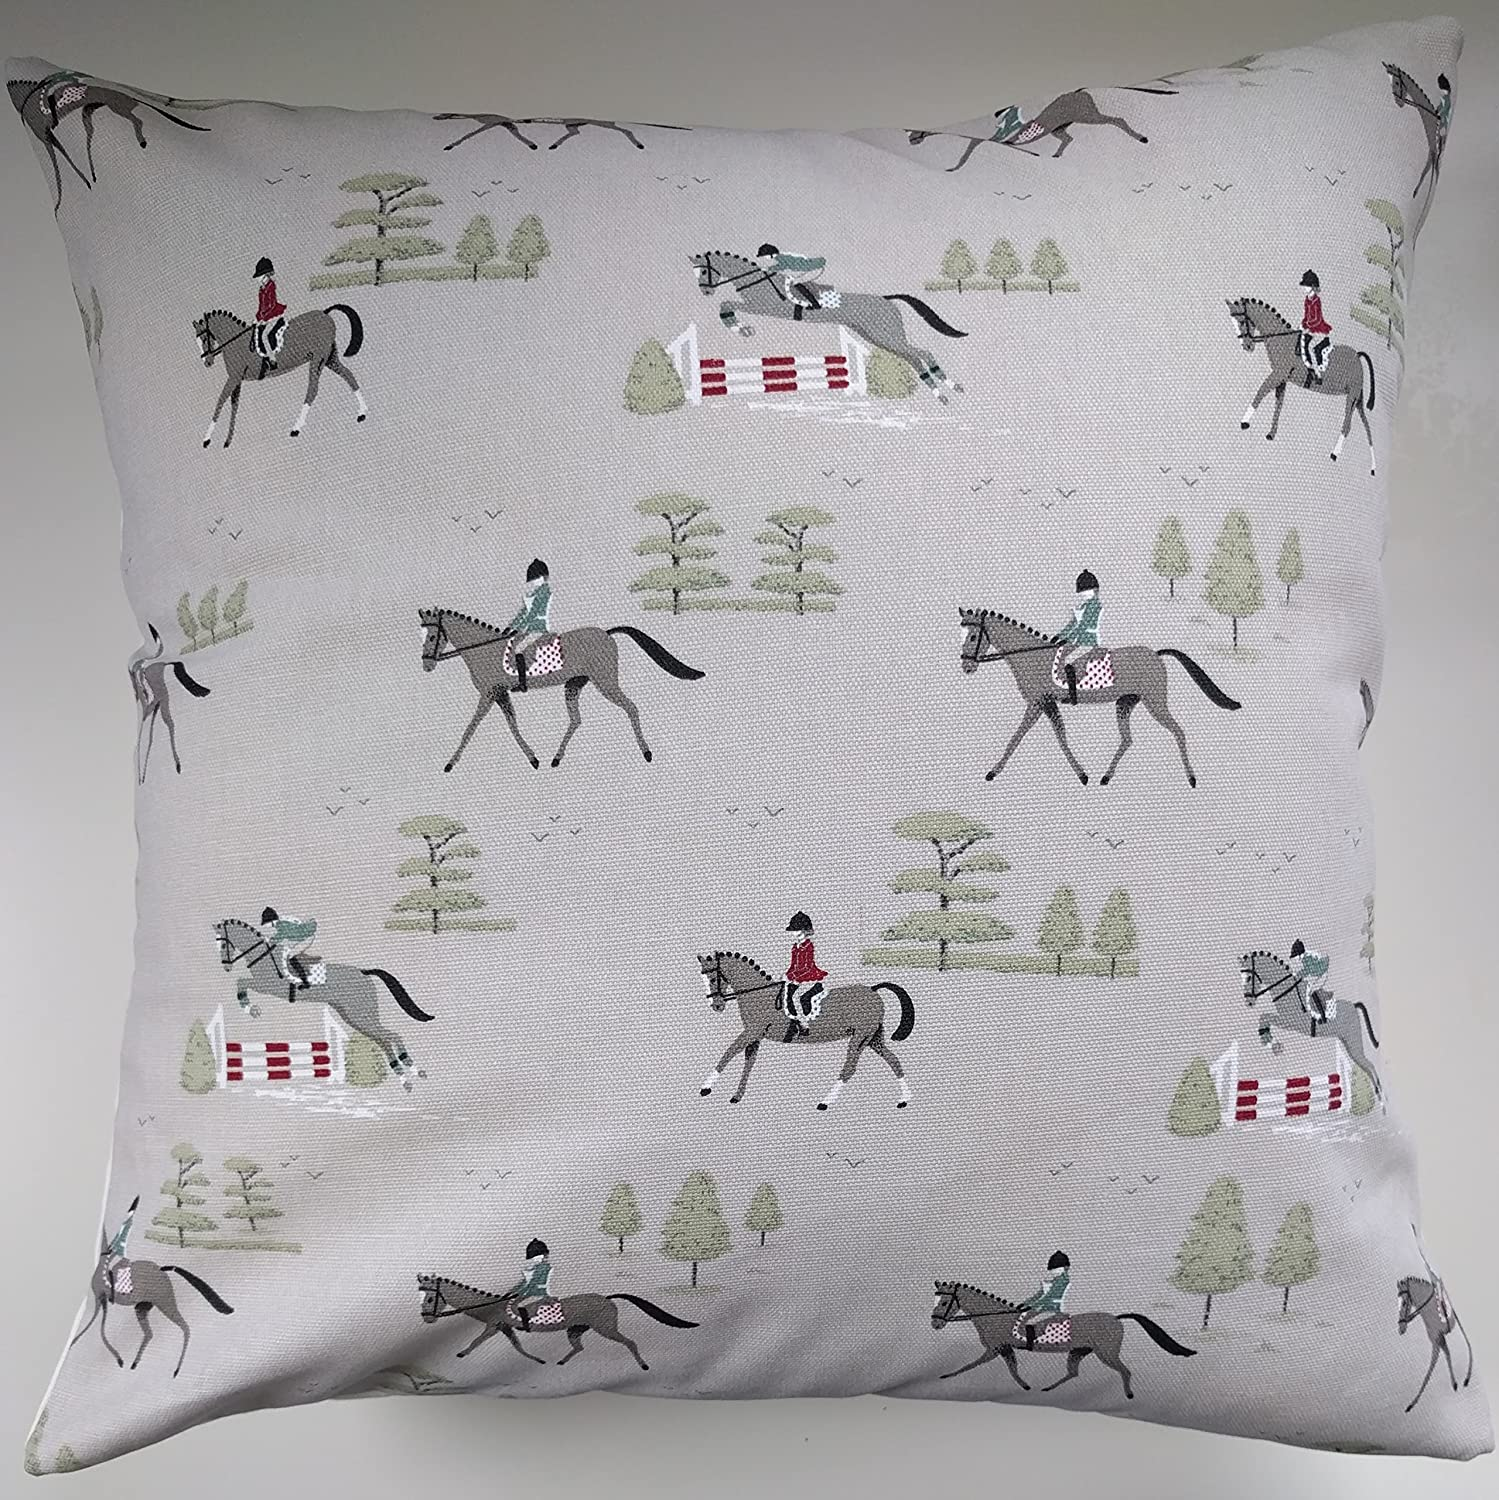 Cushion Cover in Sophie Allport Horses 14' 16' 18' 20' 22' 24'